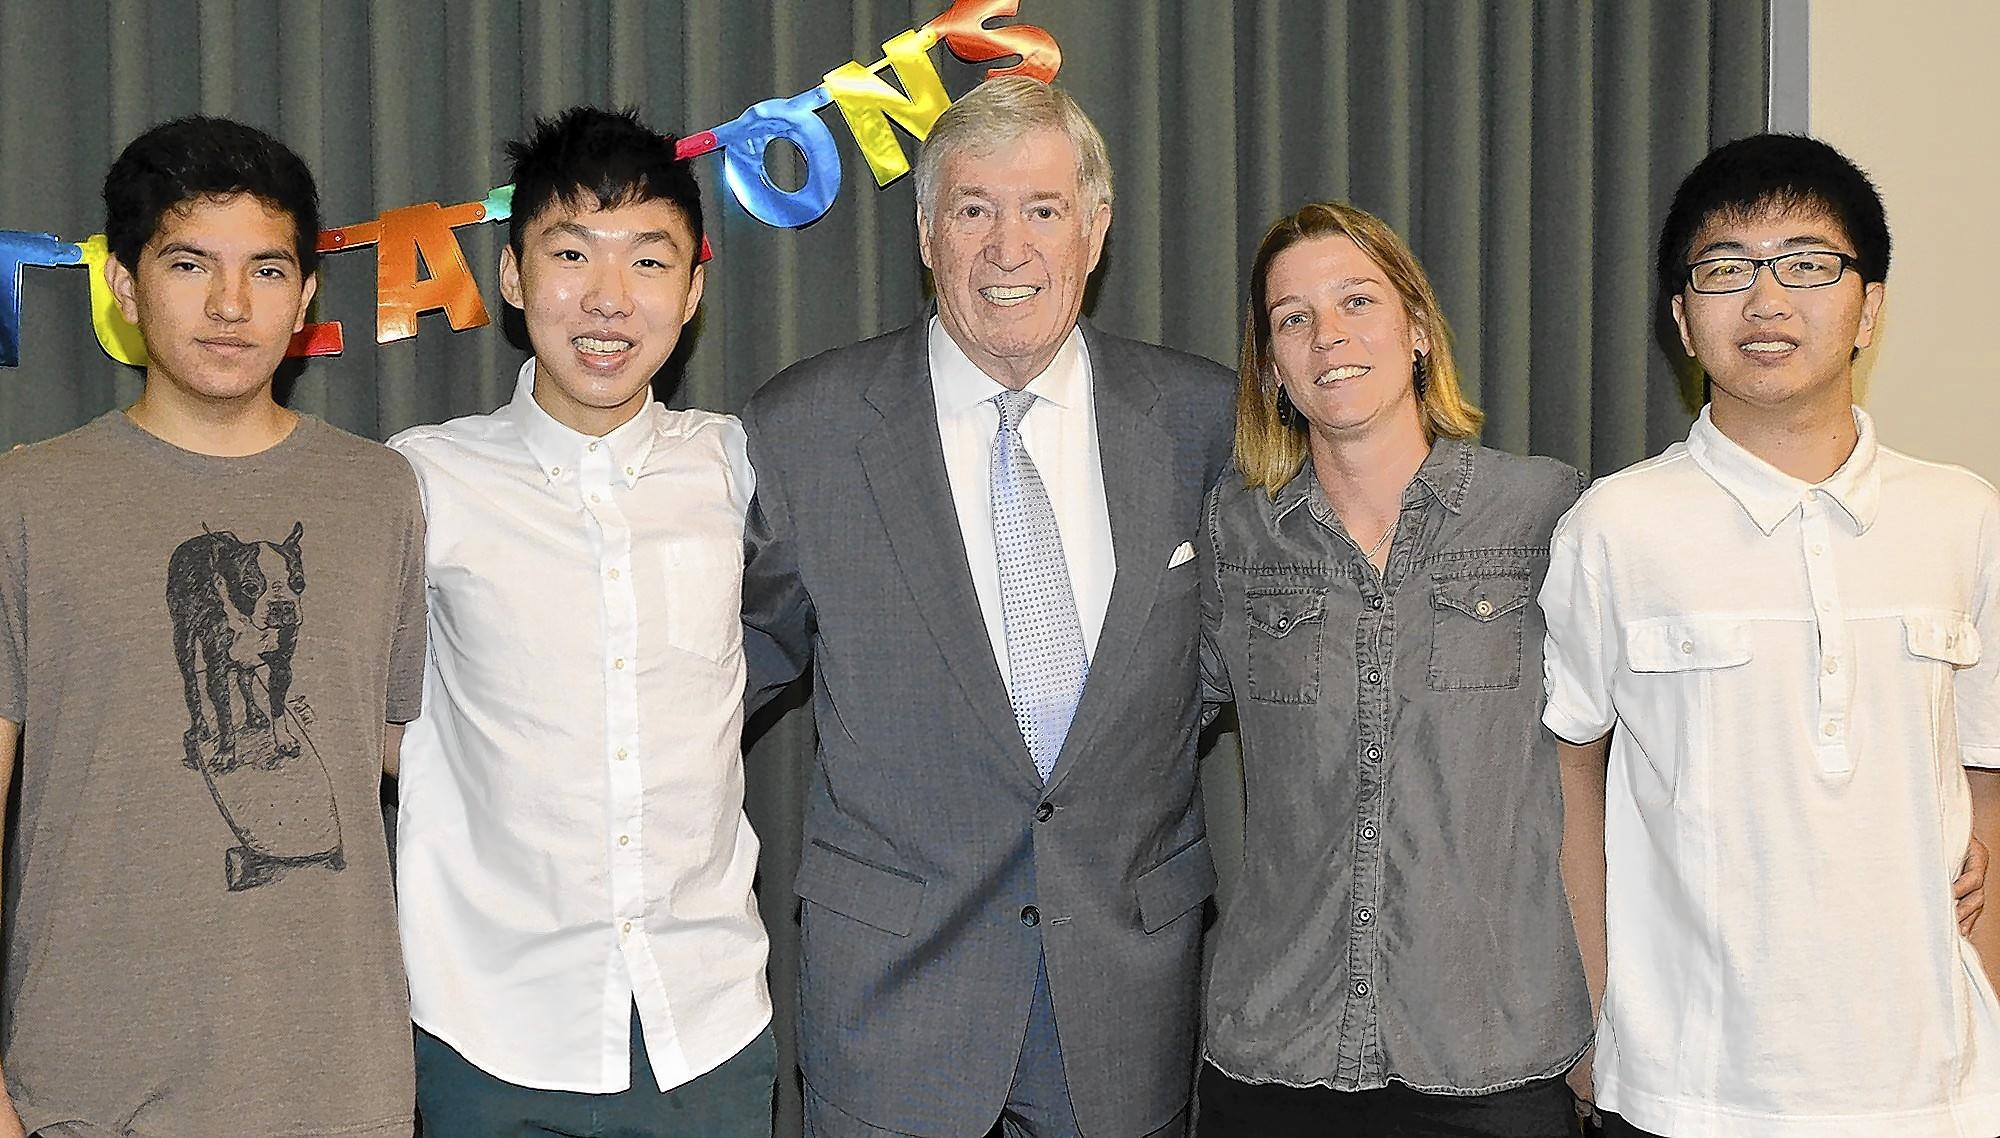 Benefactor Ray Adams, center, with recipients Sergio Anleu, from left, Kevin Zhang, Candace Fournier and Yun Chang during last week's scholarship presentation.